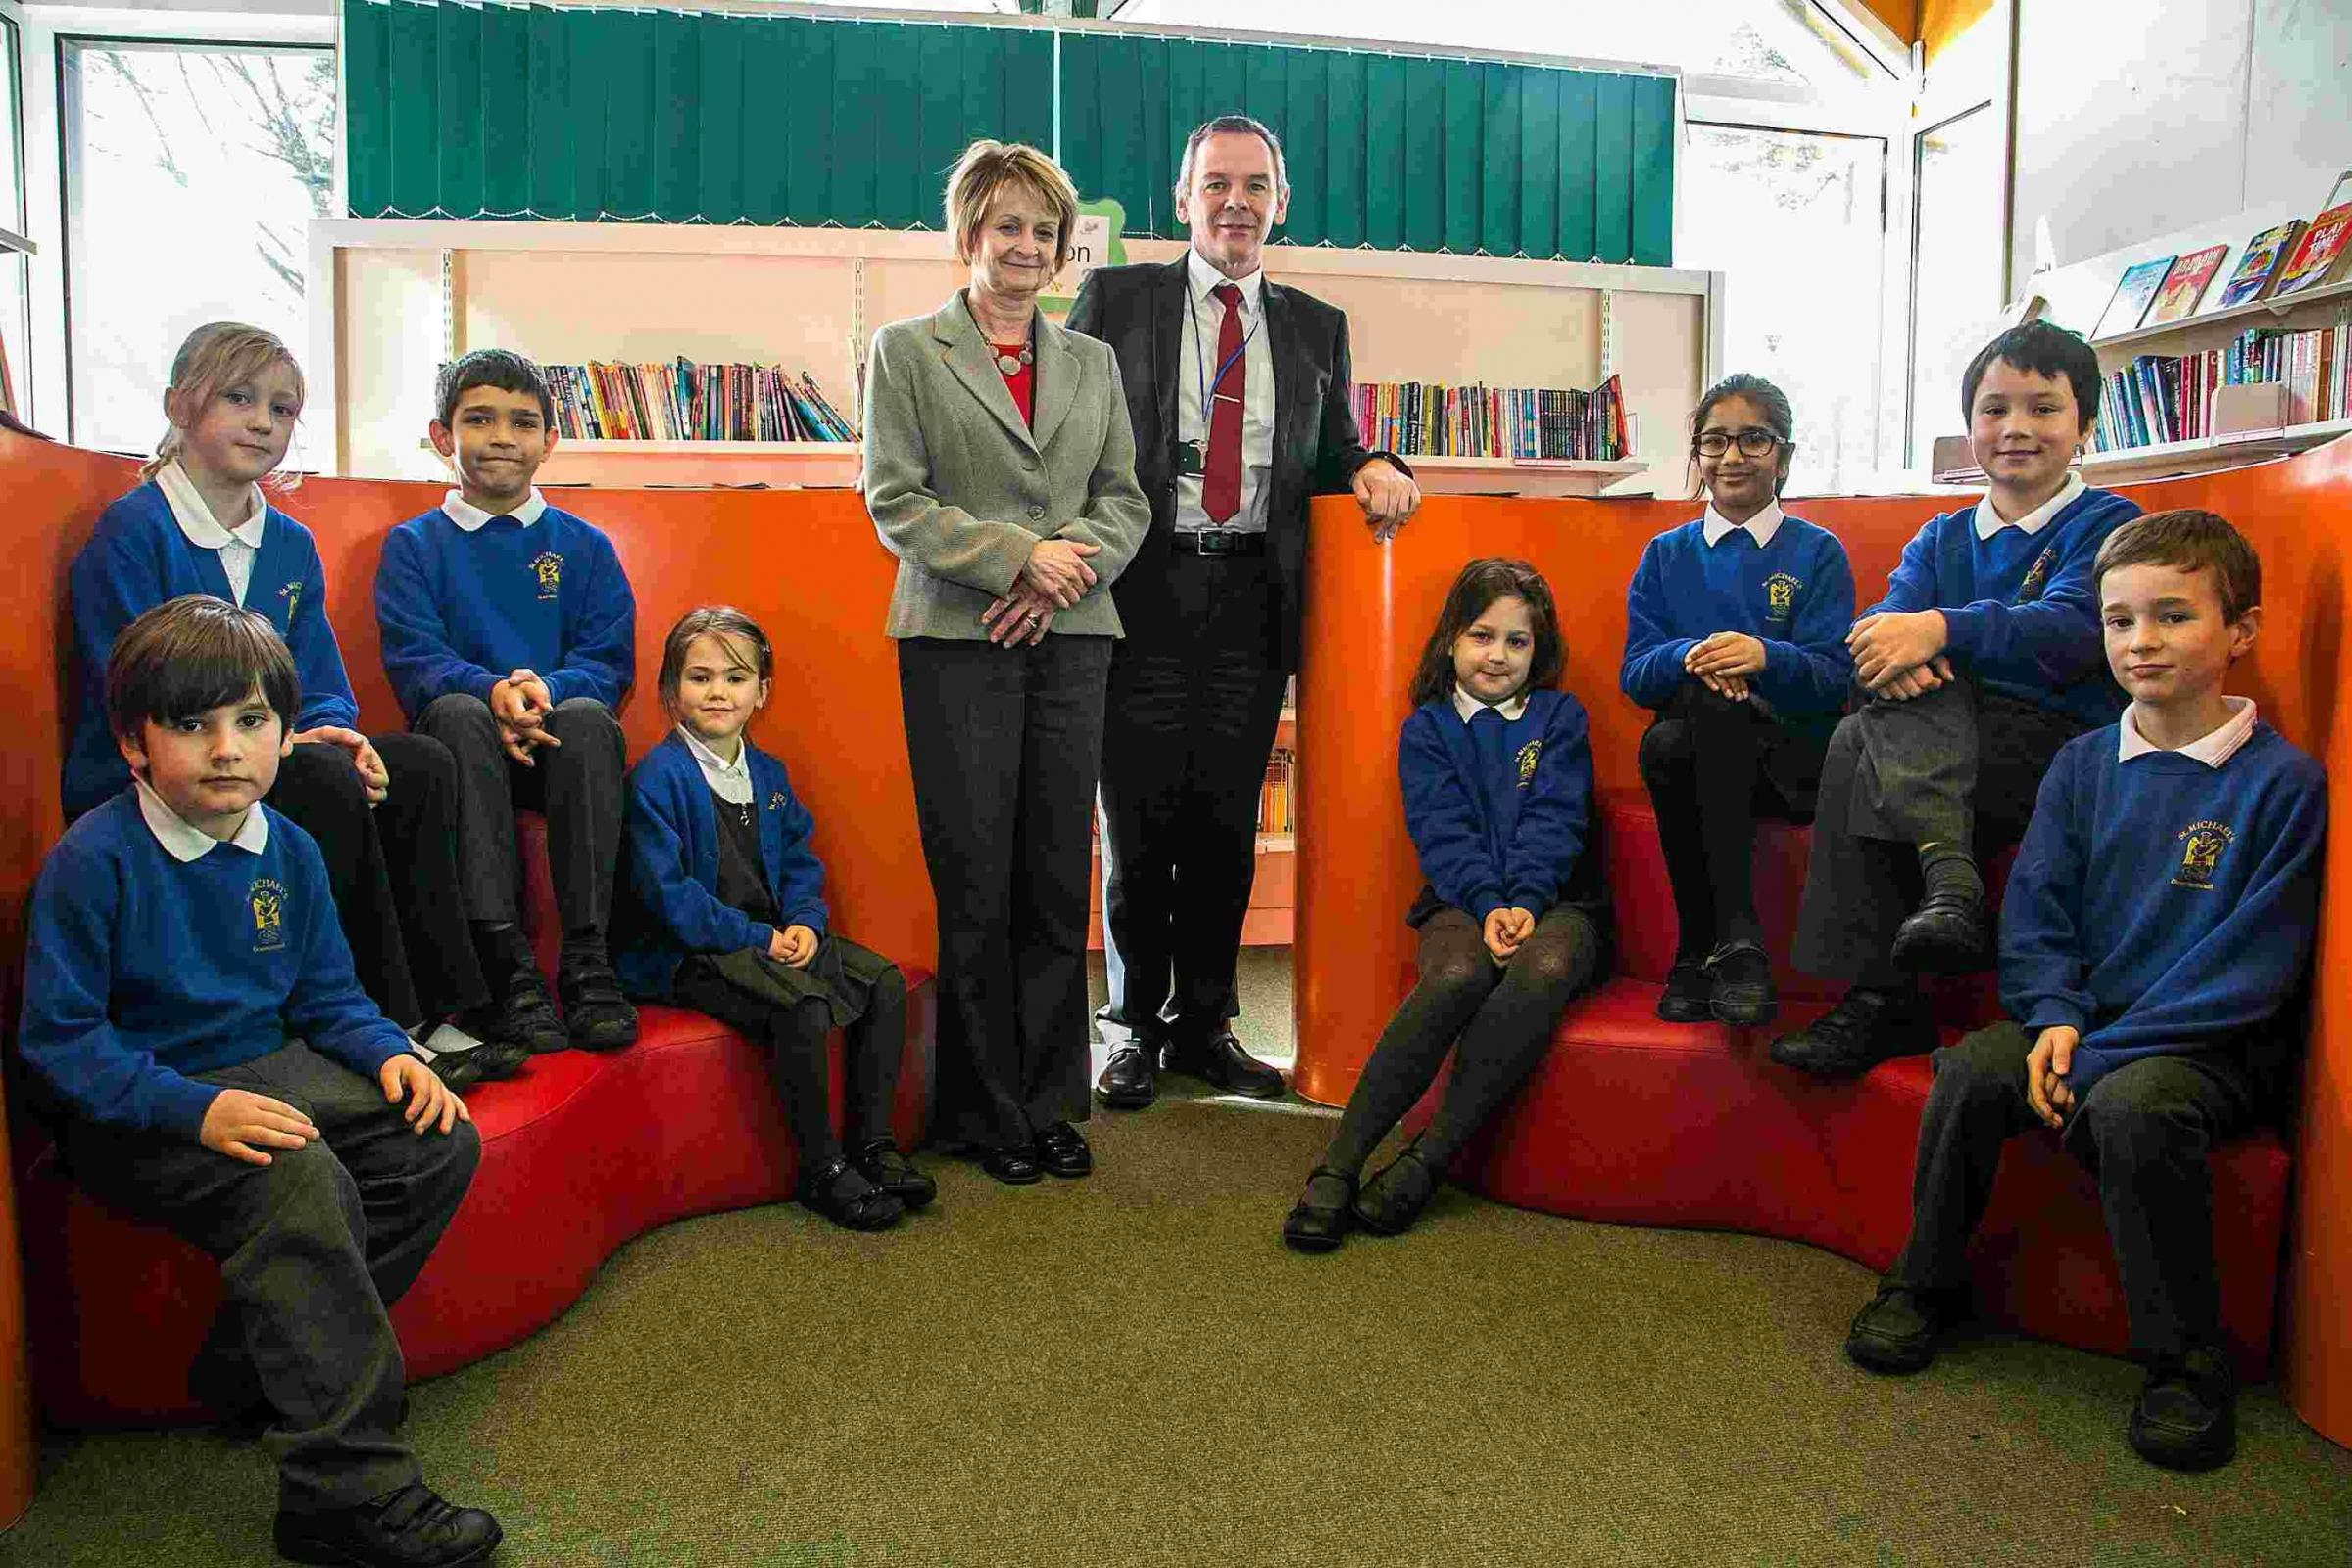 'A village school in the heart of the town': St Michael's Primary School values multi-cultural school society